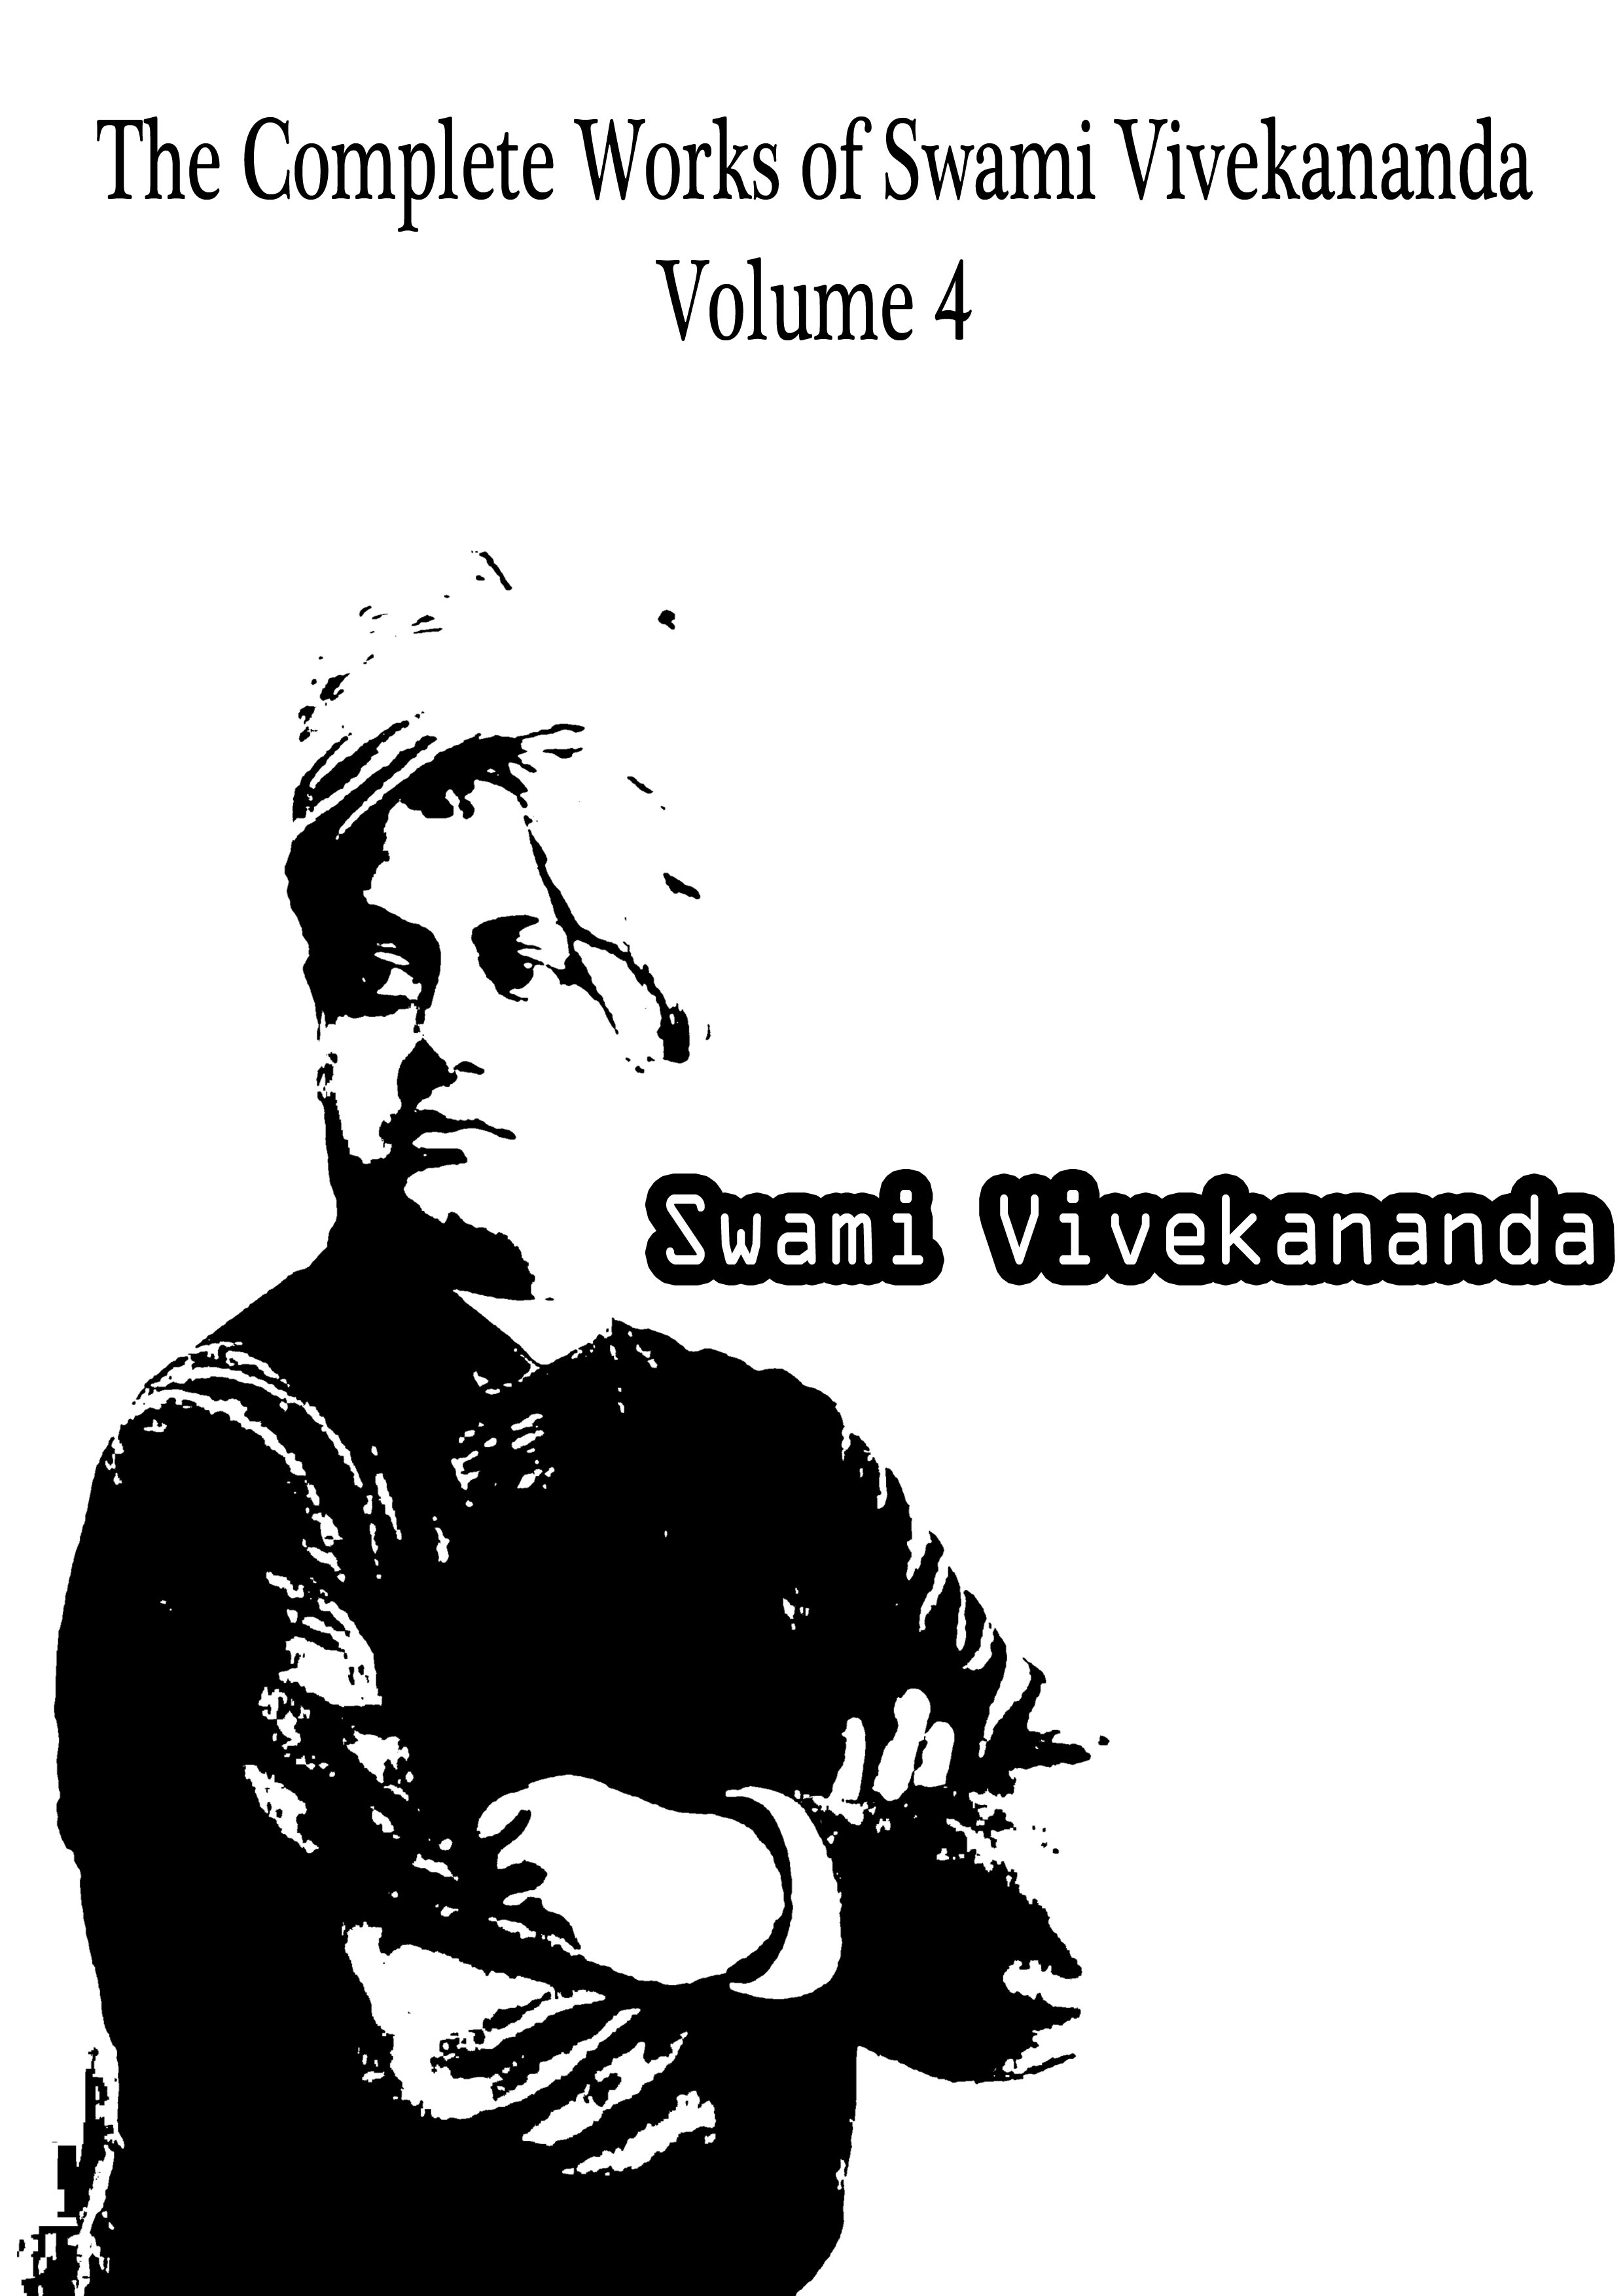 The Complete Works of Swami Vivekananda Volume 4